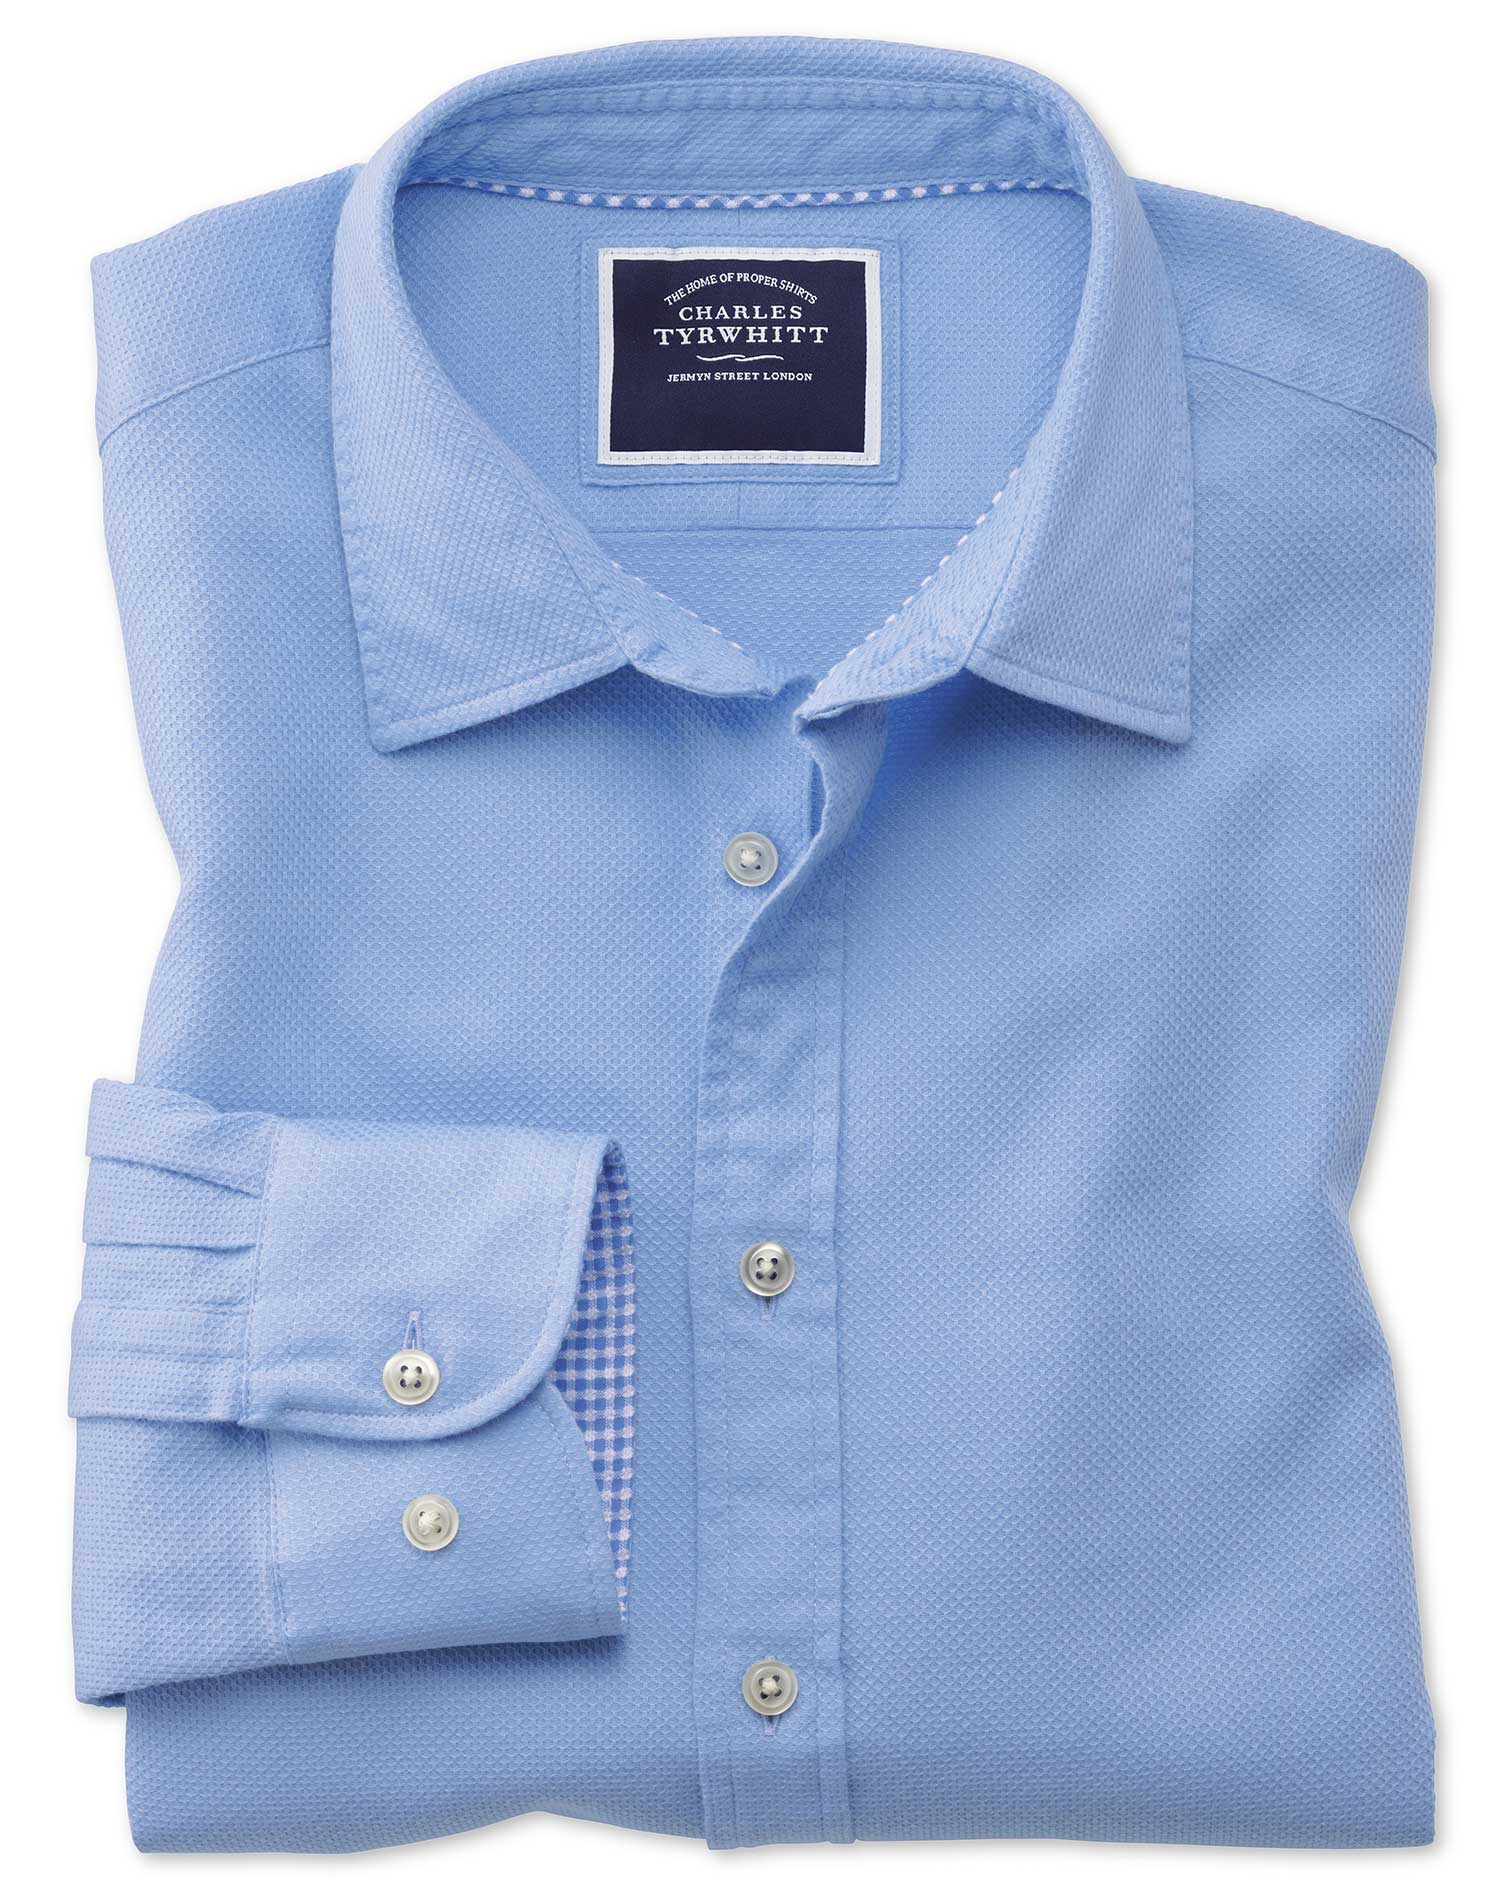 Slim Fit Washed Bright Blue Honeycomb Textured Cotton Shirt Single Cuff Size XXL by Charles Tyrwhitt